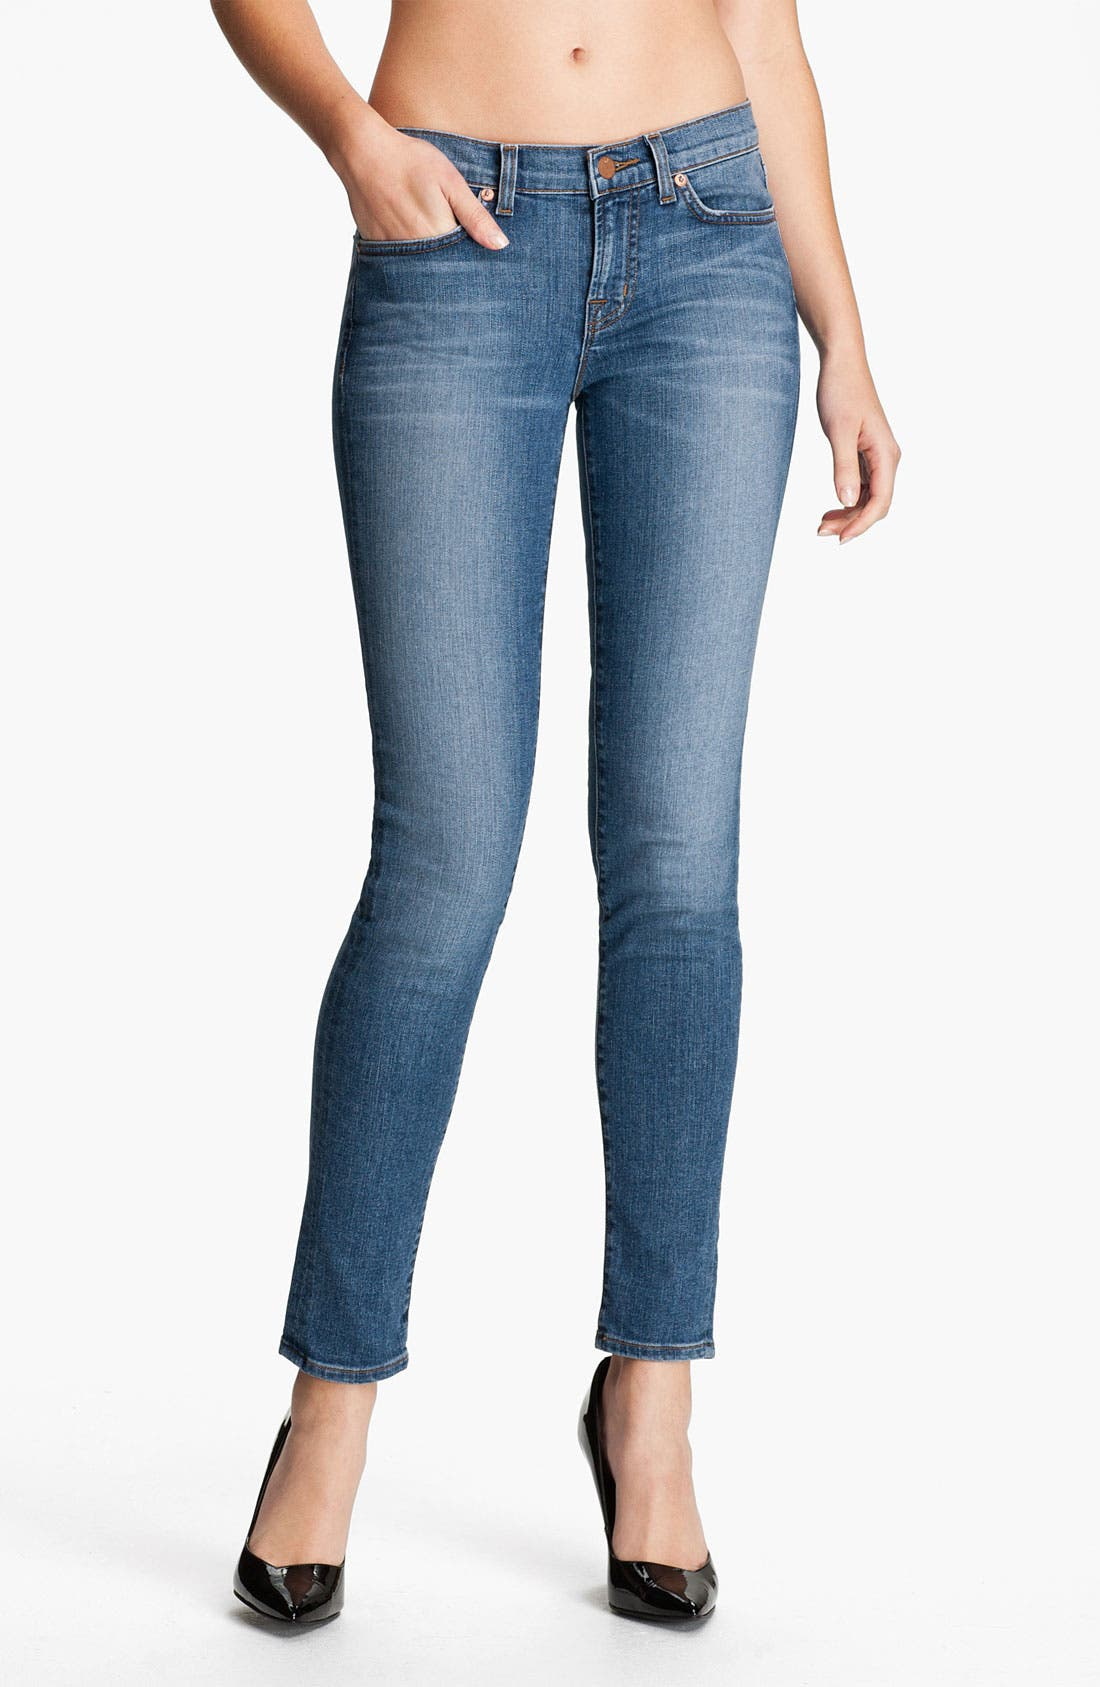 Main Image - J Brand Stretch Denim Skinny Jeans (Bliss)